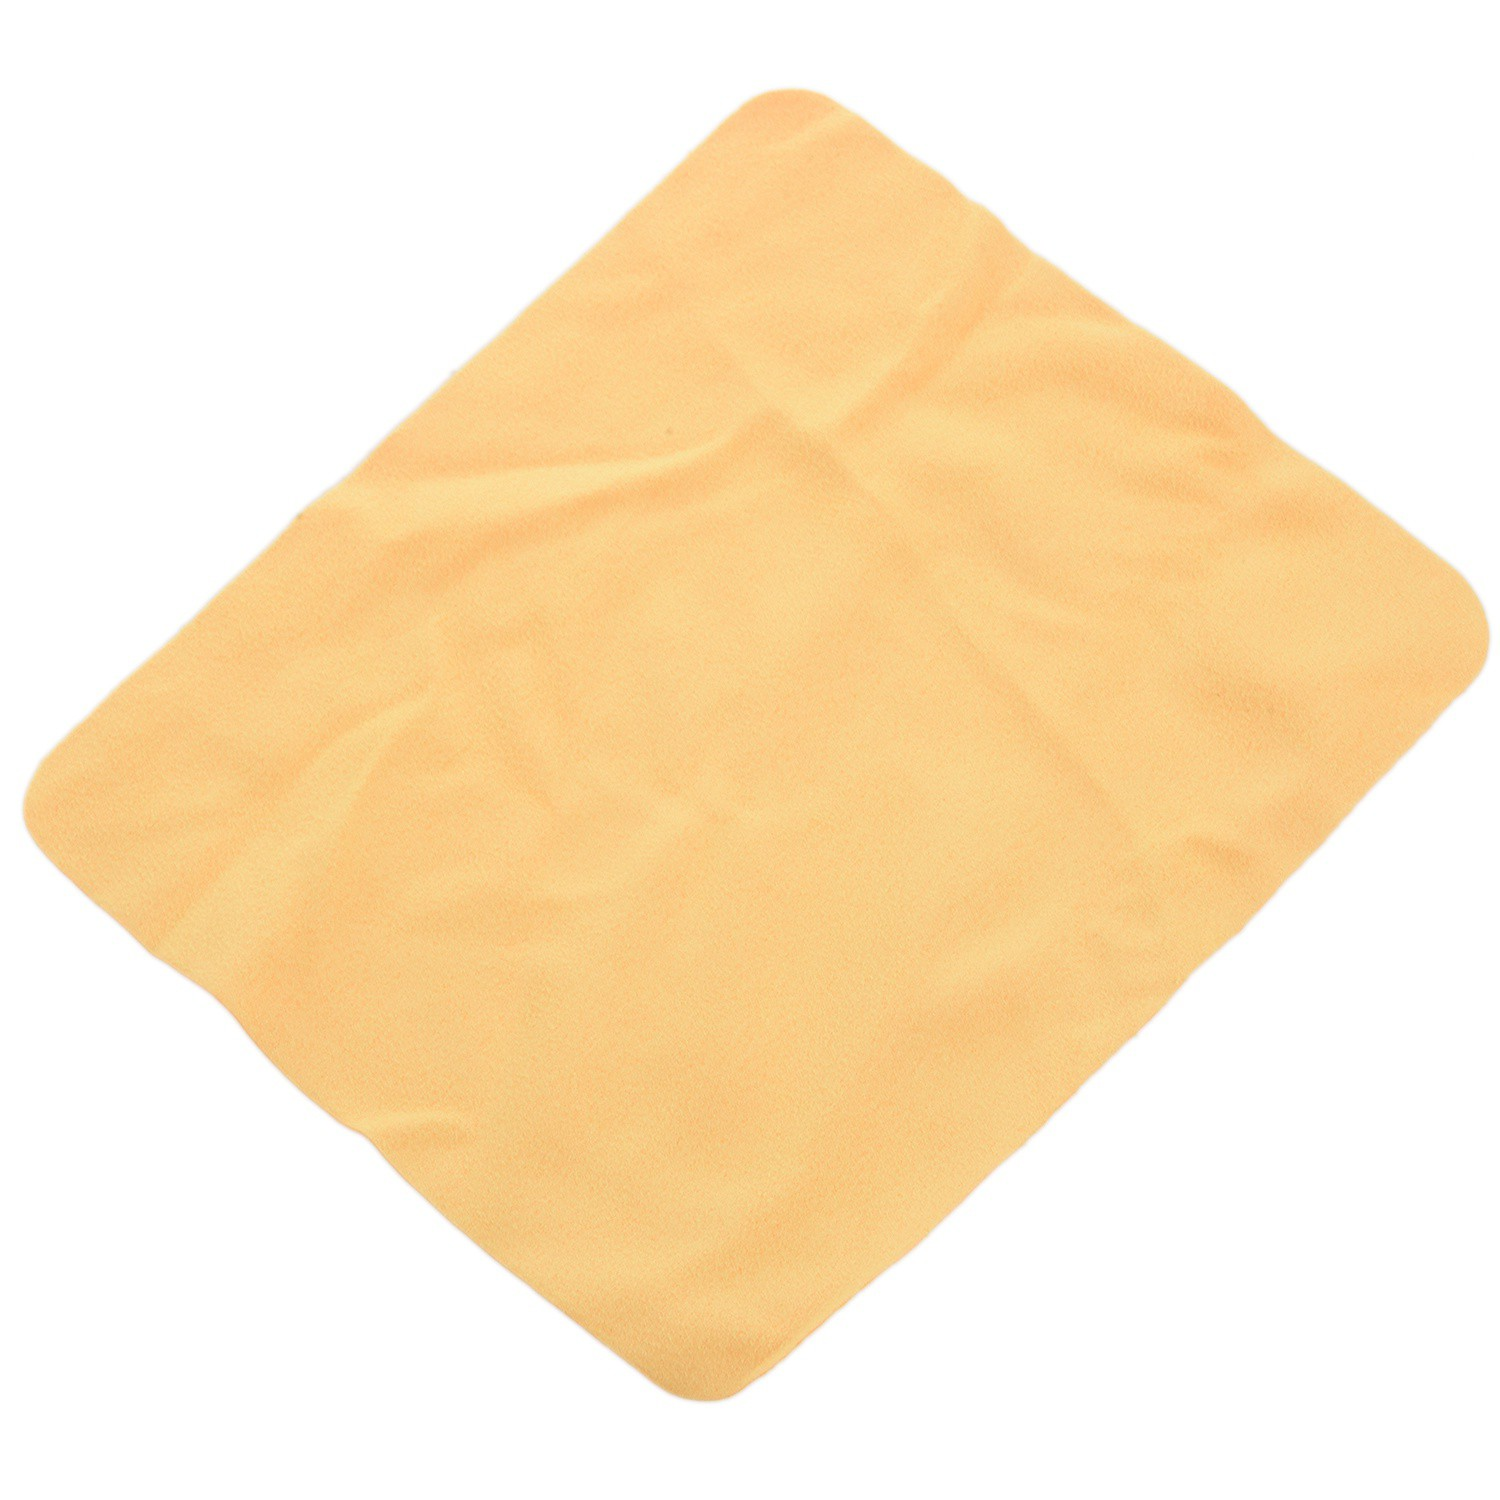 (New stock)10 Pcs Glasses Cloth Eyeglasses Chamois Cloth Microfiber Cleaning Cloth Wipe Mobile Phone Screen Lens